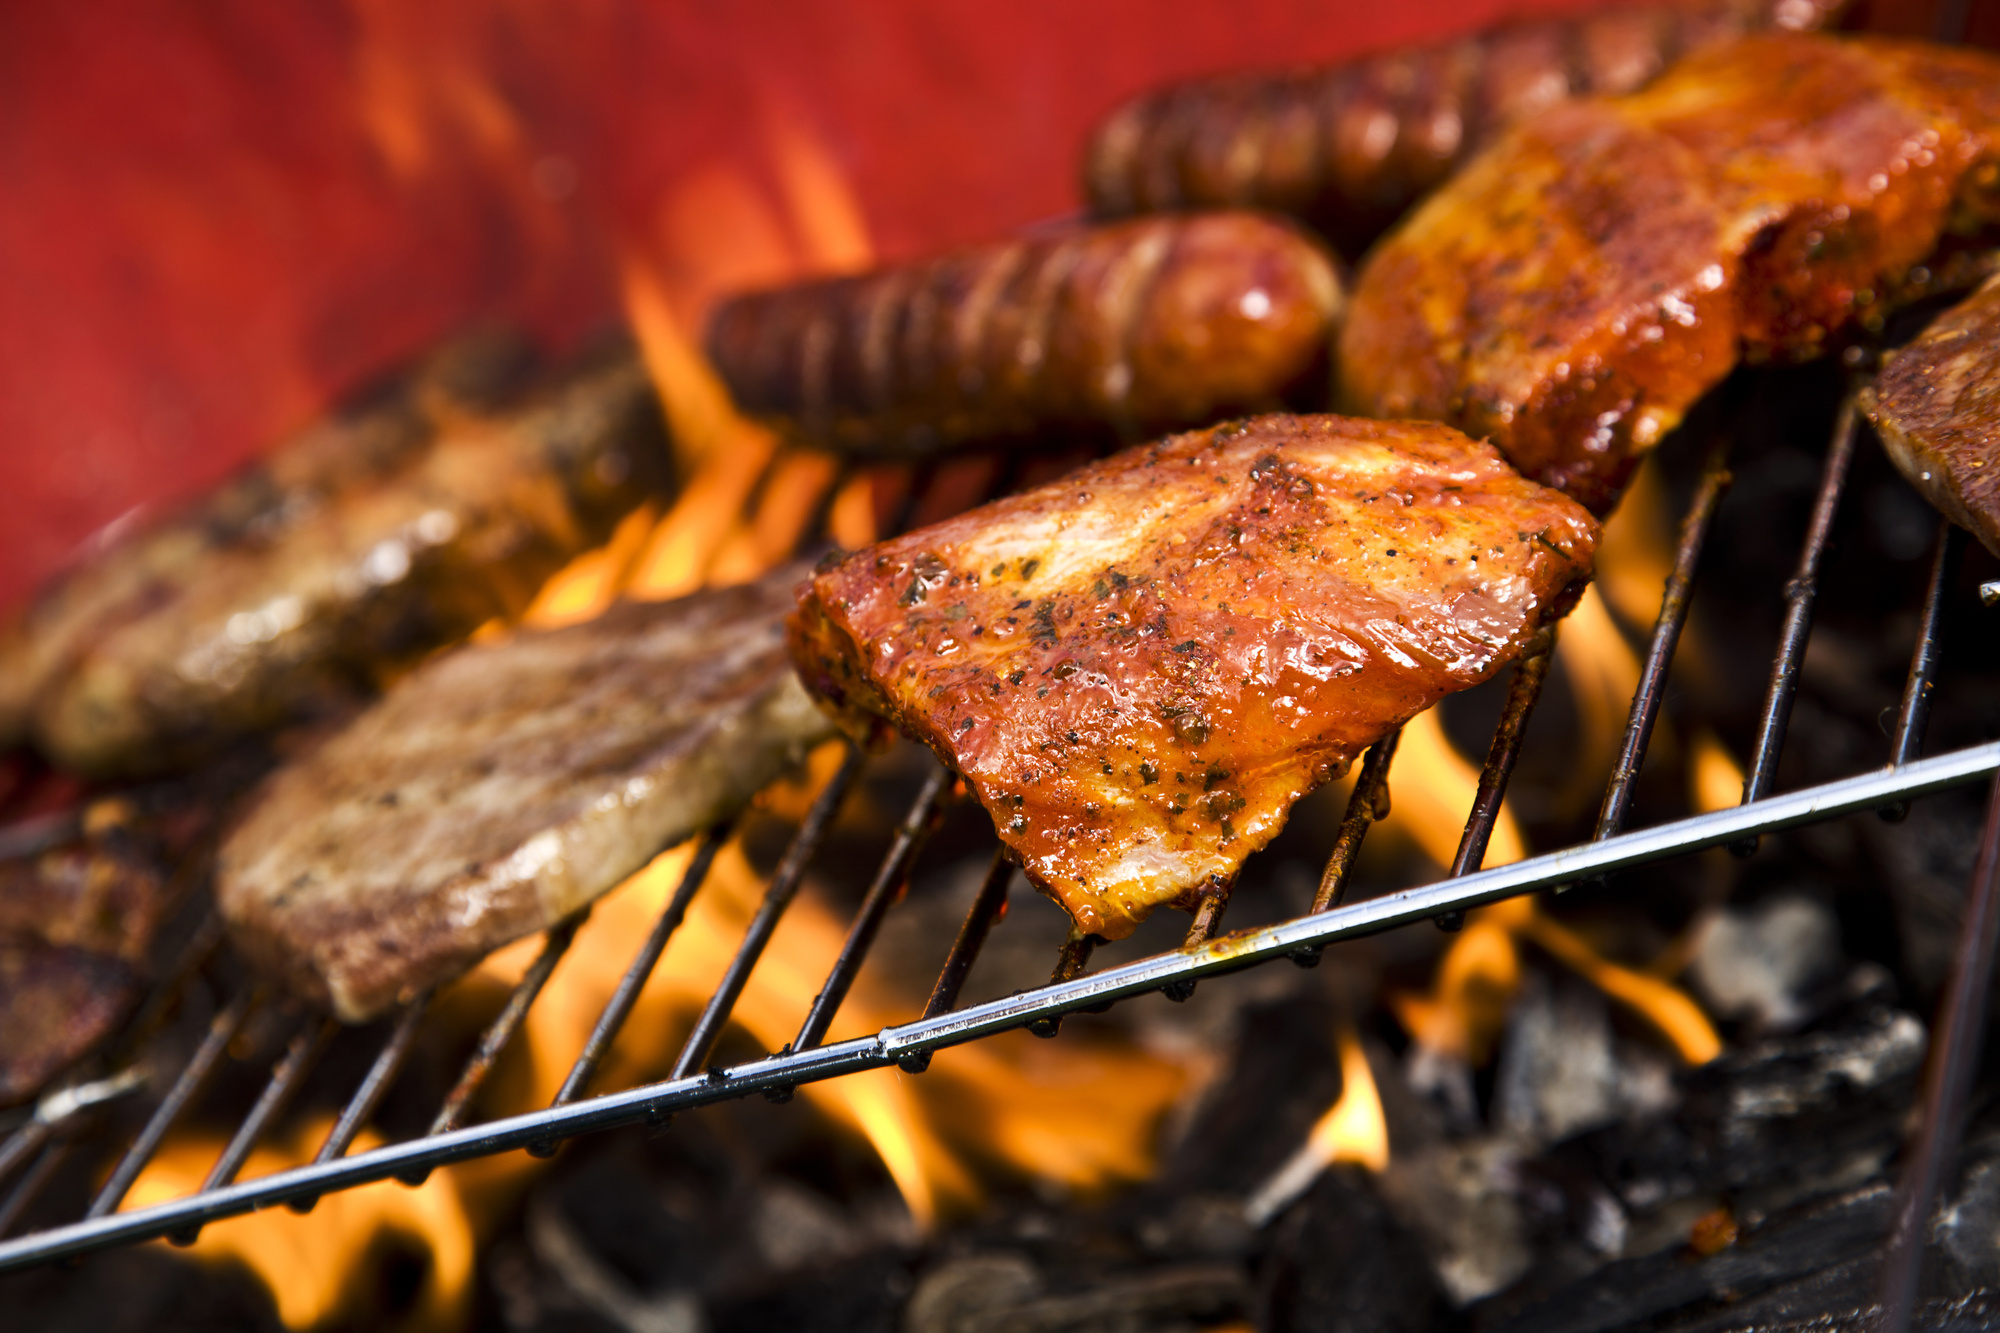 Become The Grill Master The Top 7 Benefits Of Using A Charcoal Grill Pk Grills